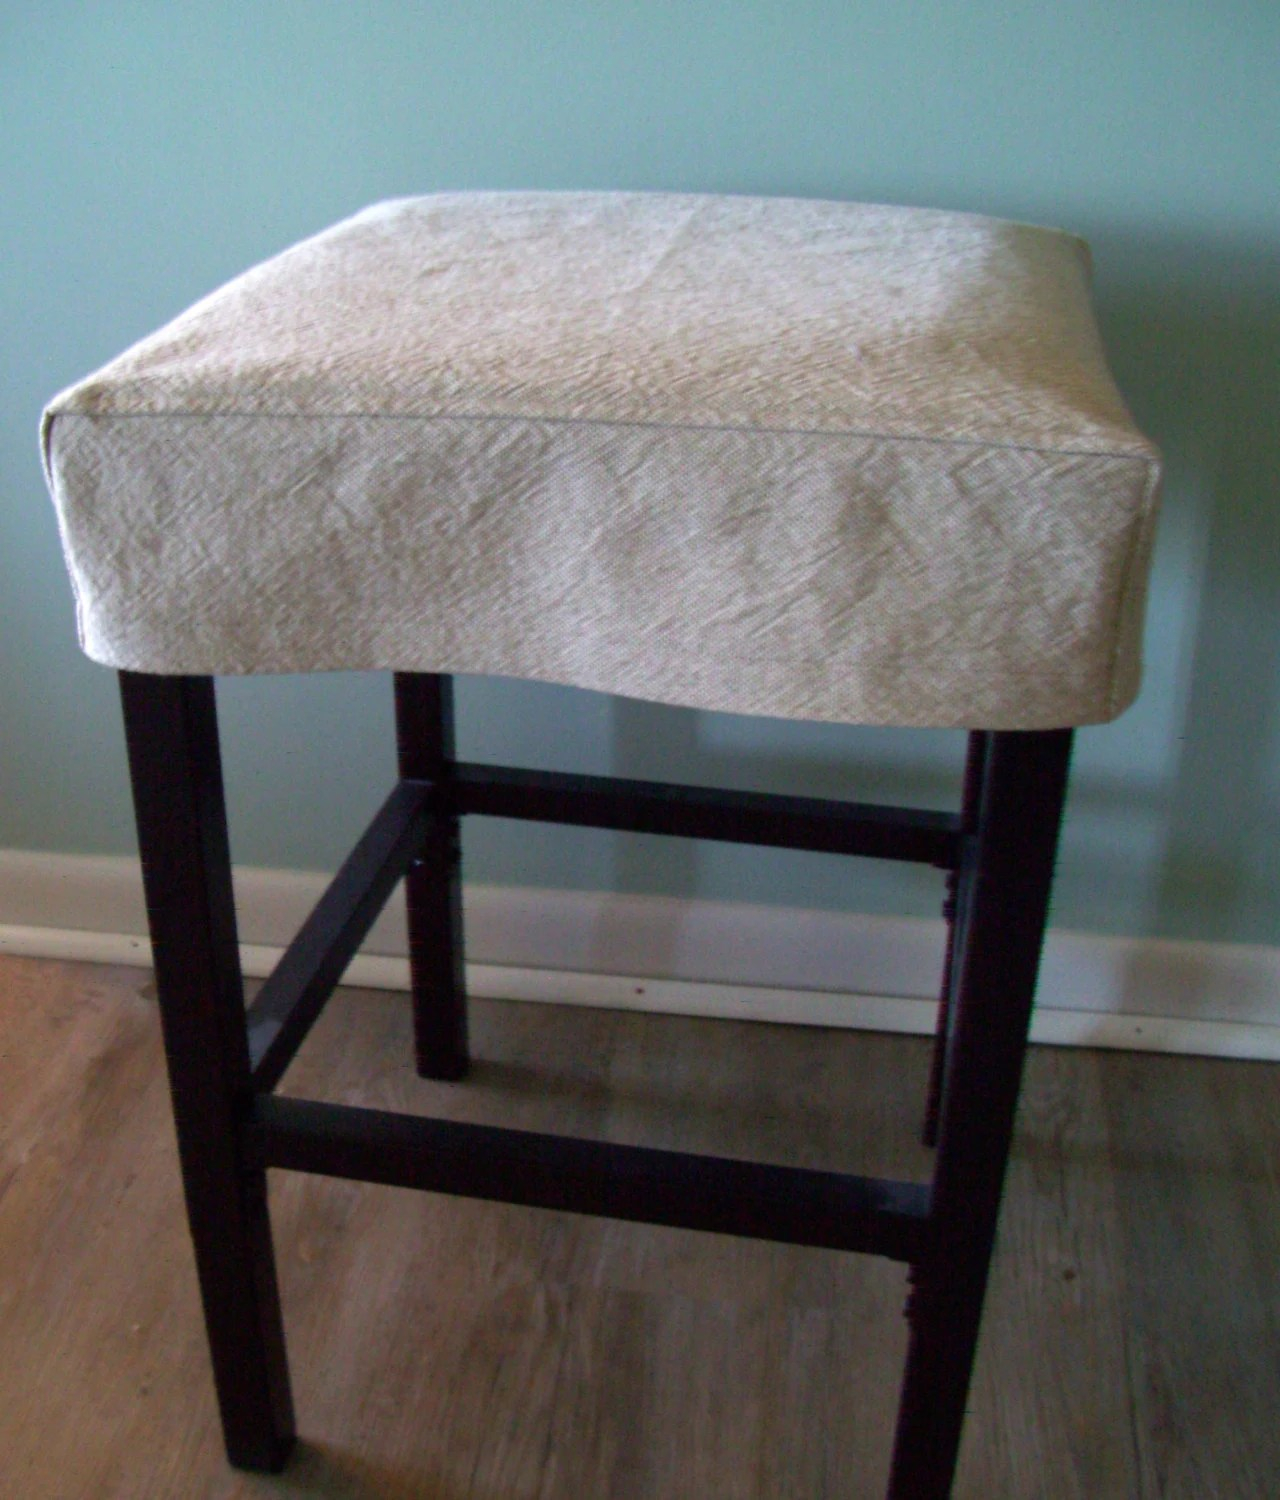 bar stool chair rung protectors white reclining salon square slipcover tan topstitched barstool cover